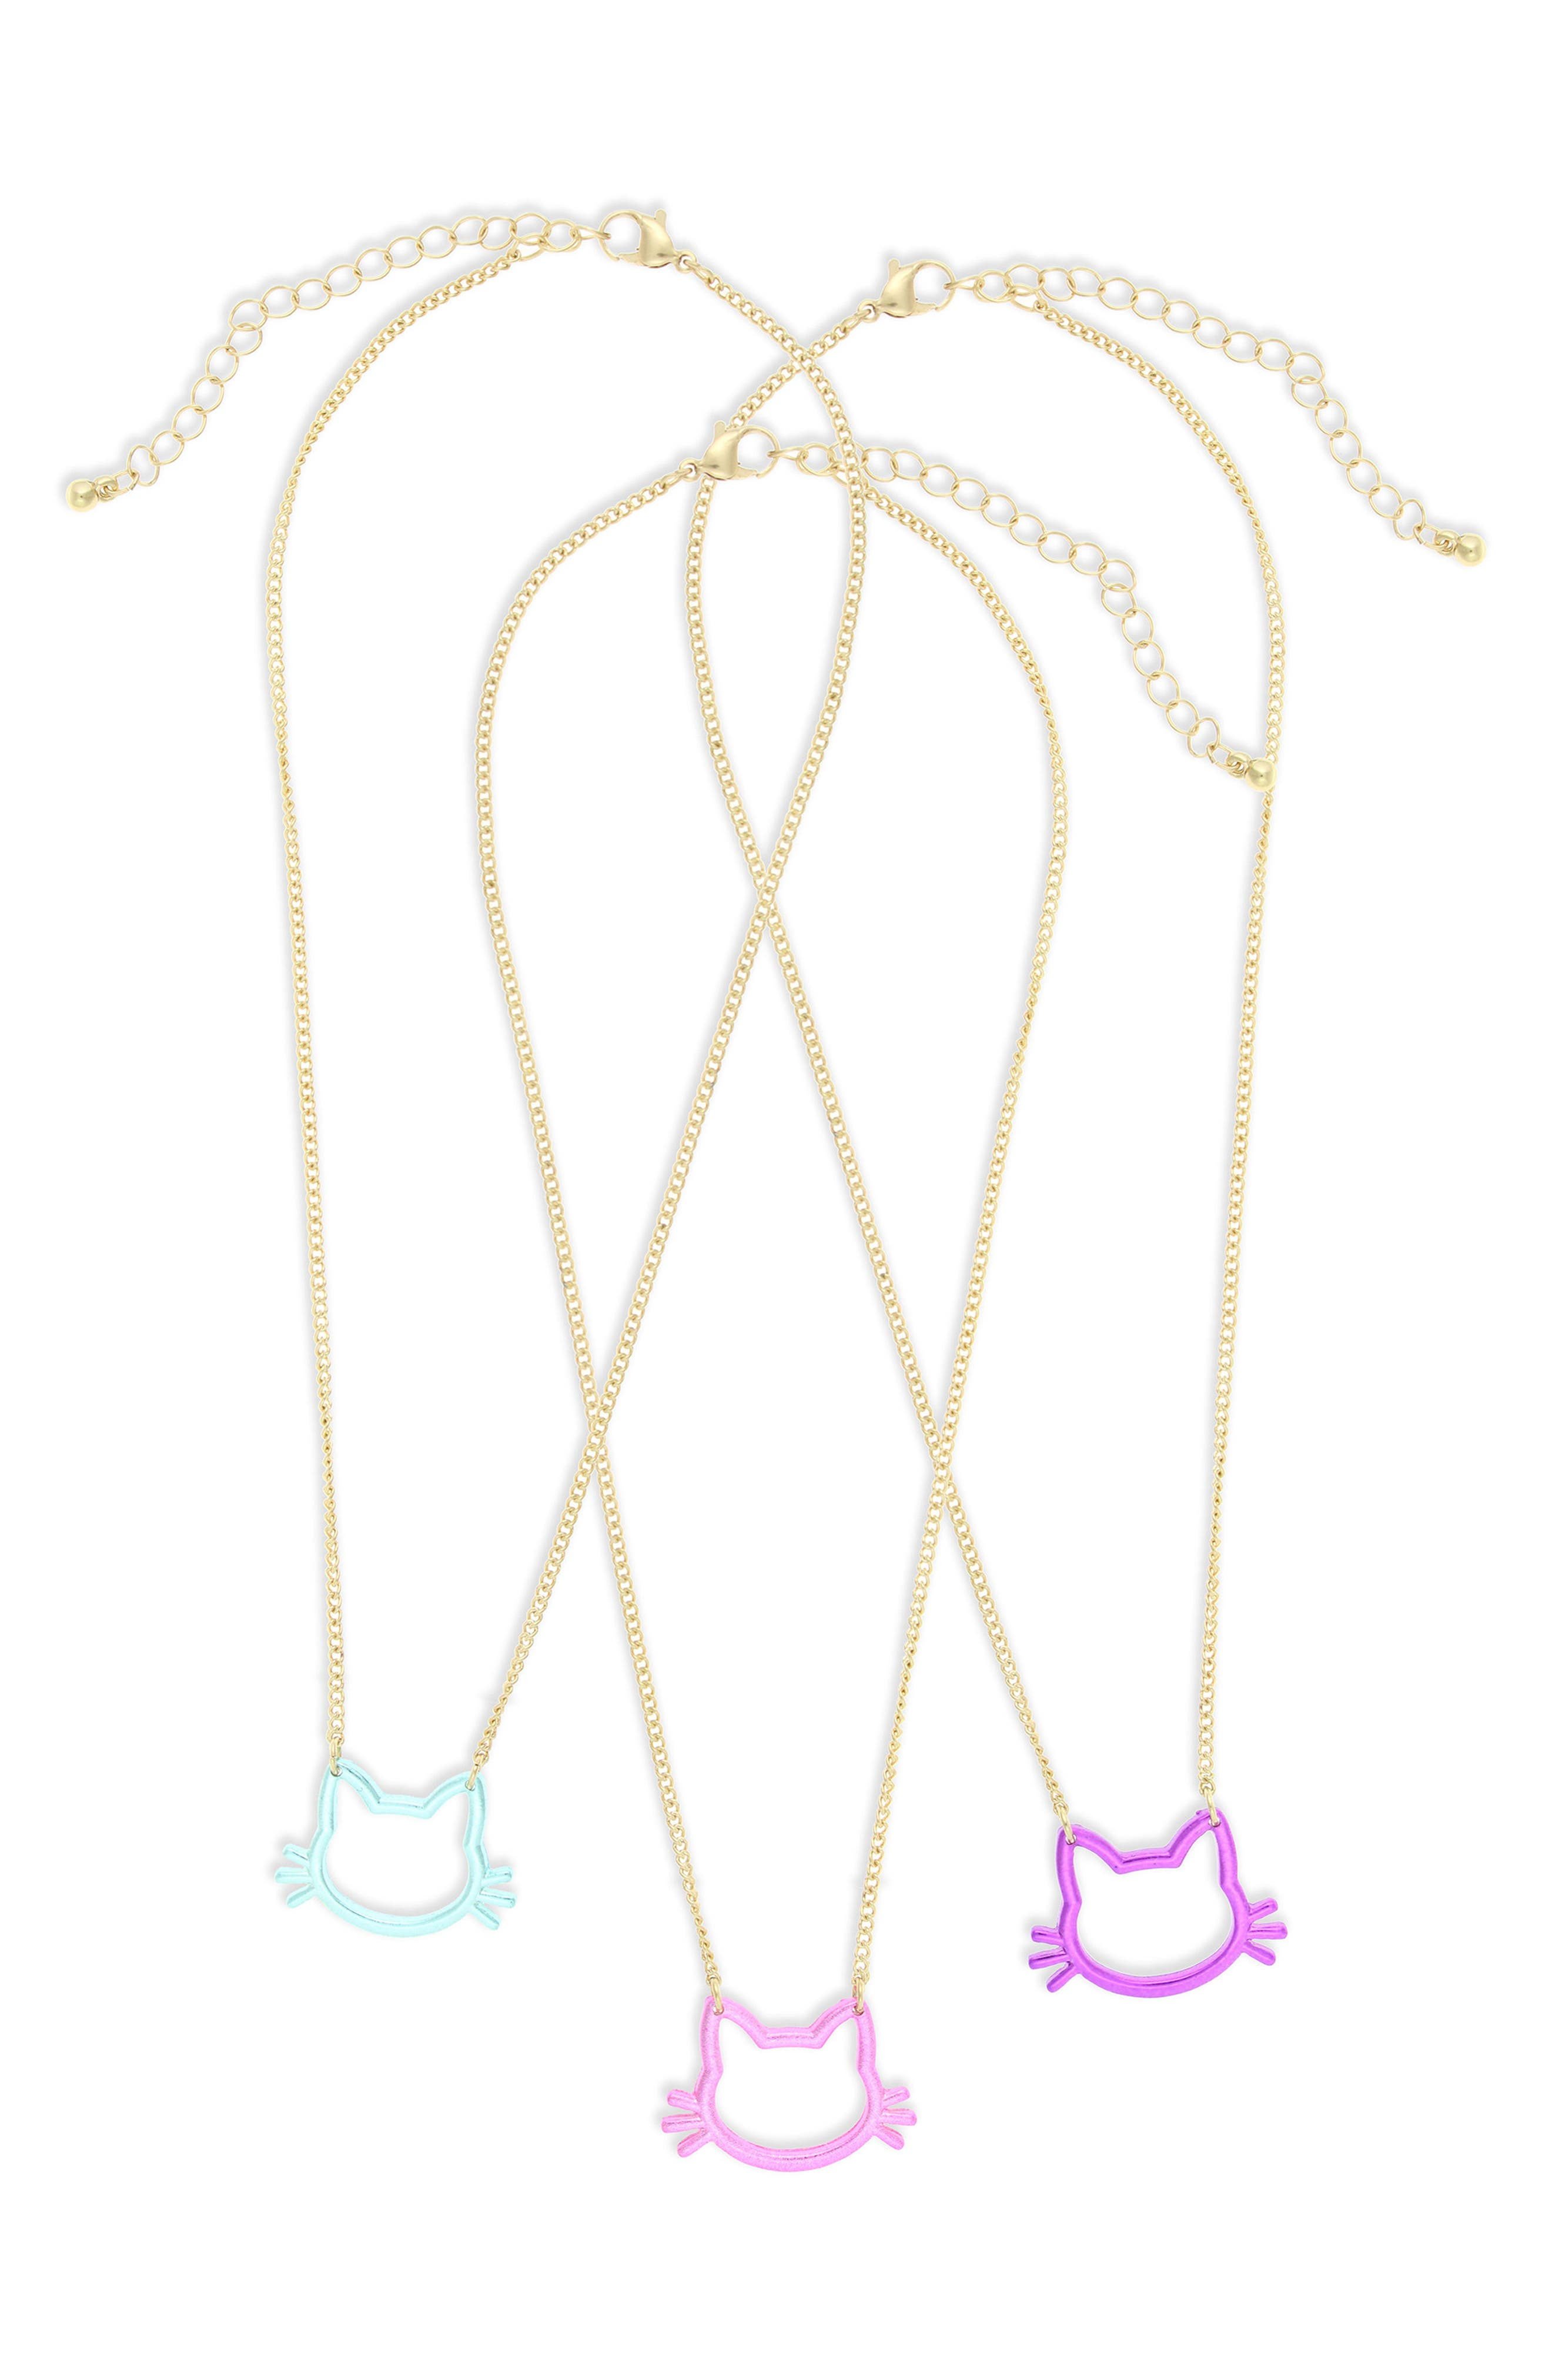 Alternate Image 1 Selected - Capelli New York Set of 3 Cat Pendant Necklaces (Girls)